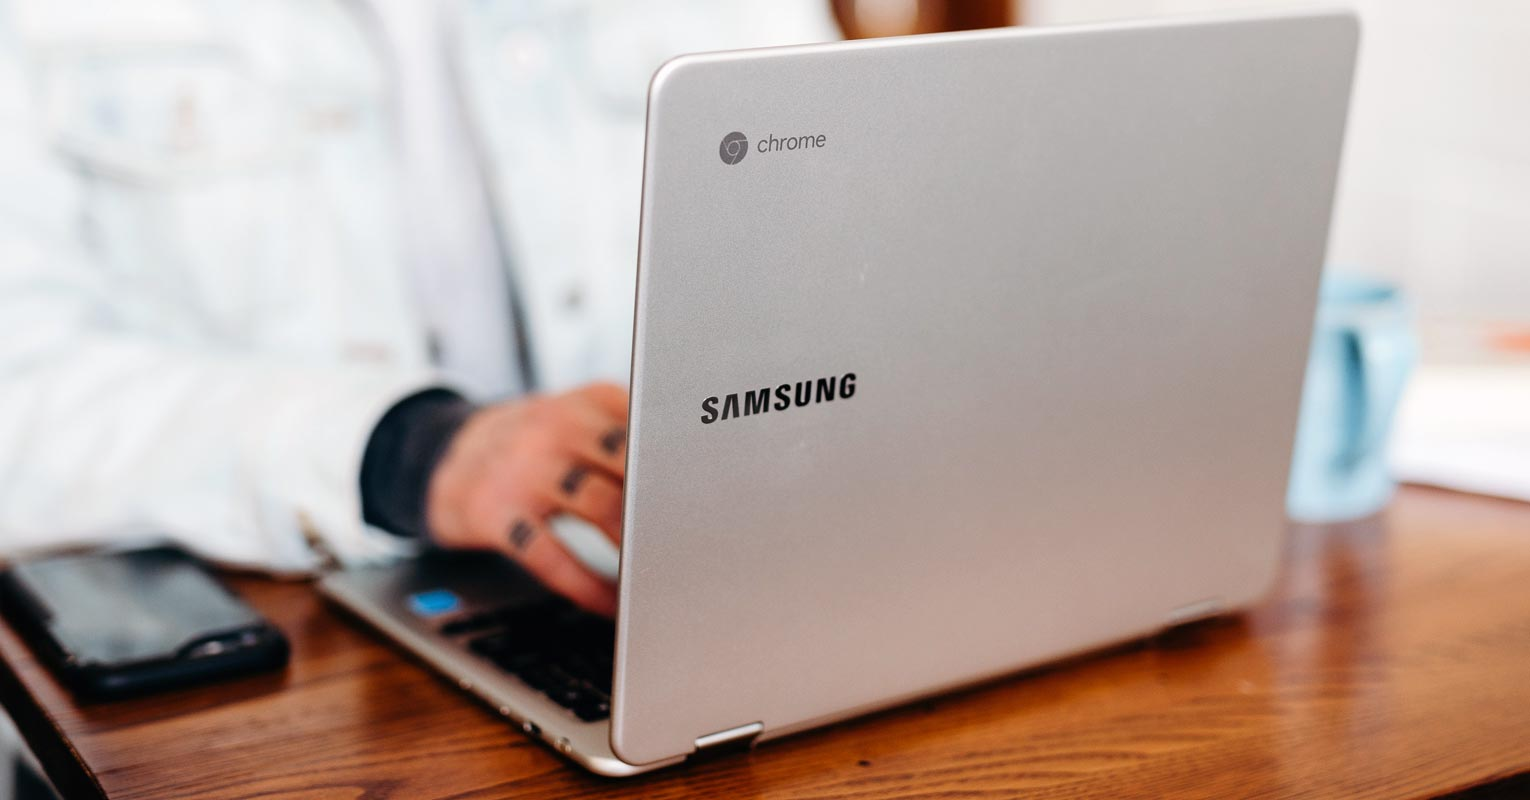 Samsung Chromebook on the table